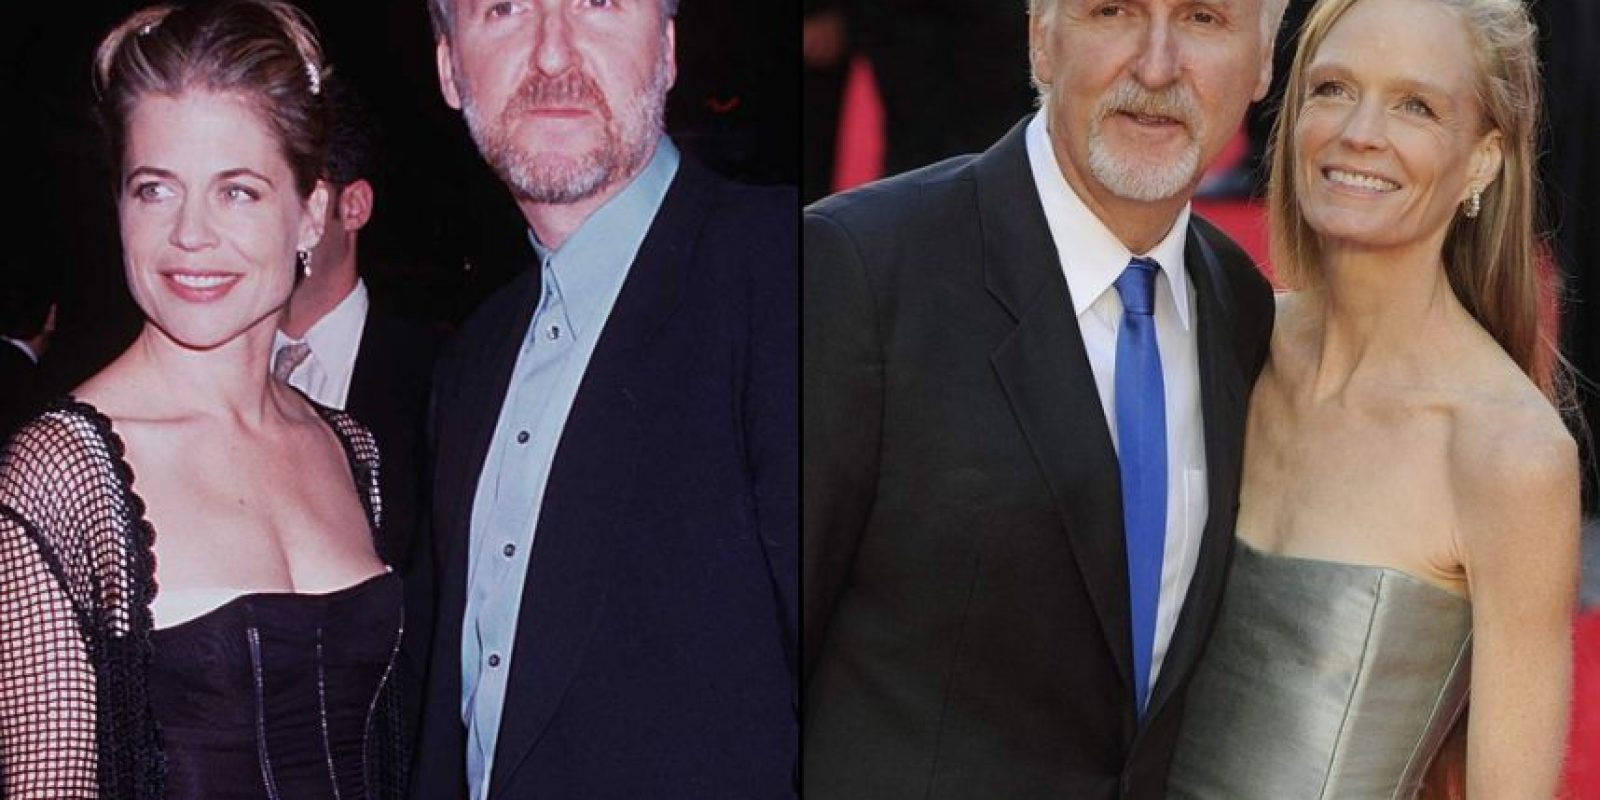 James Cameron Foto: (Getty Images / Ron Galella / Gareth Cattermole)